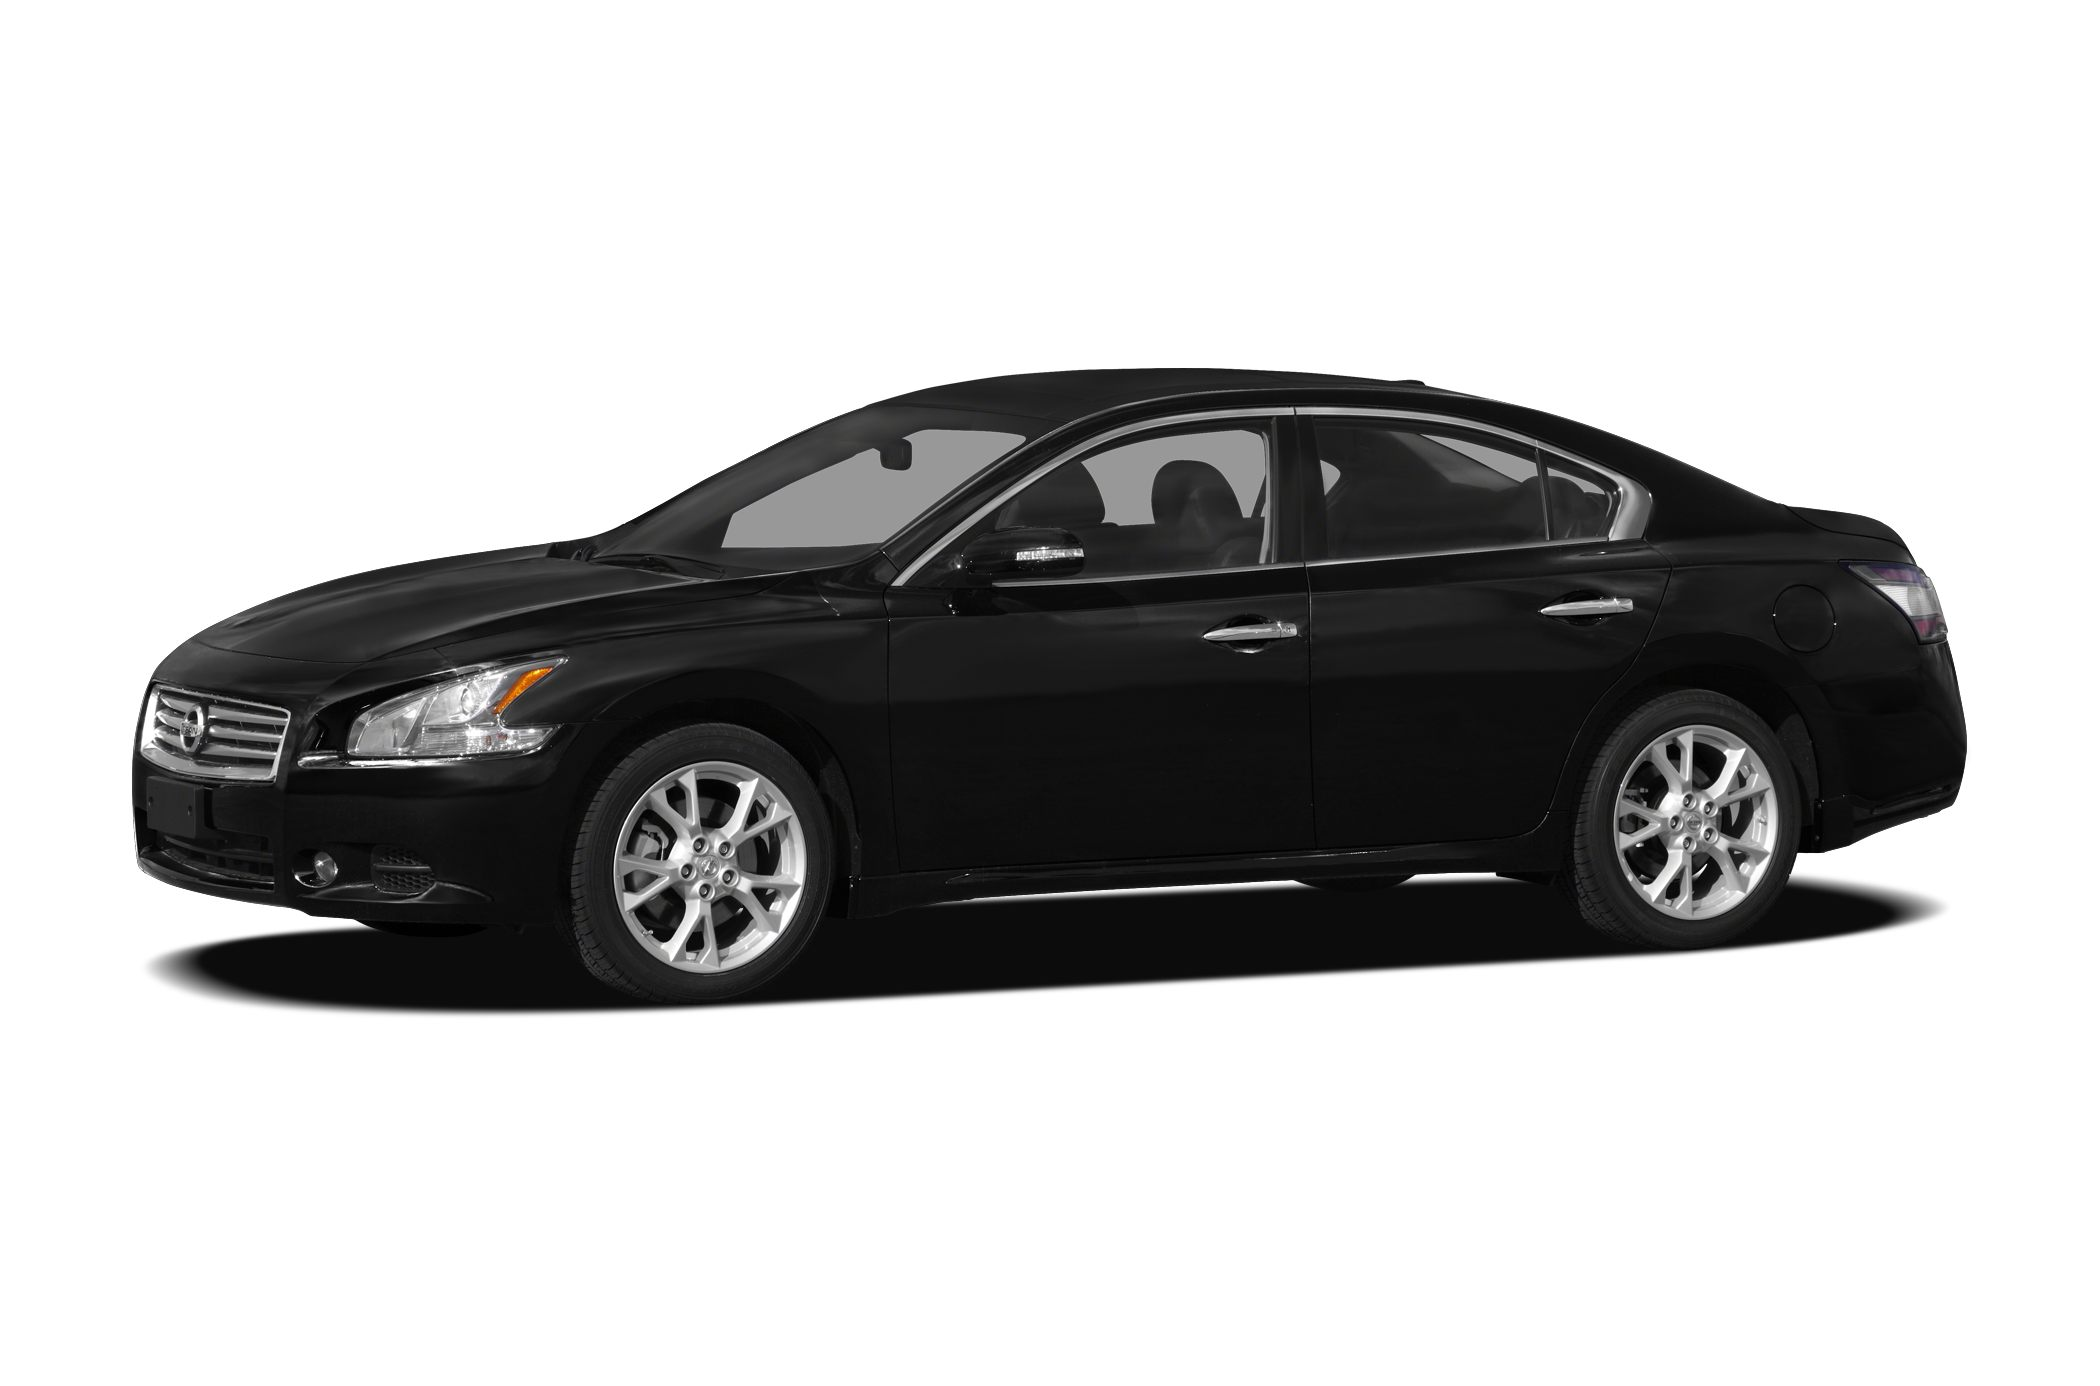 2012 Nissan Maxima SV Sedan for sale in Richland for $18,995 with 66,130 miles.